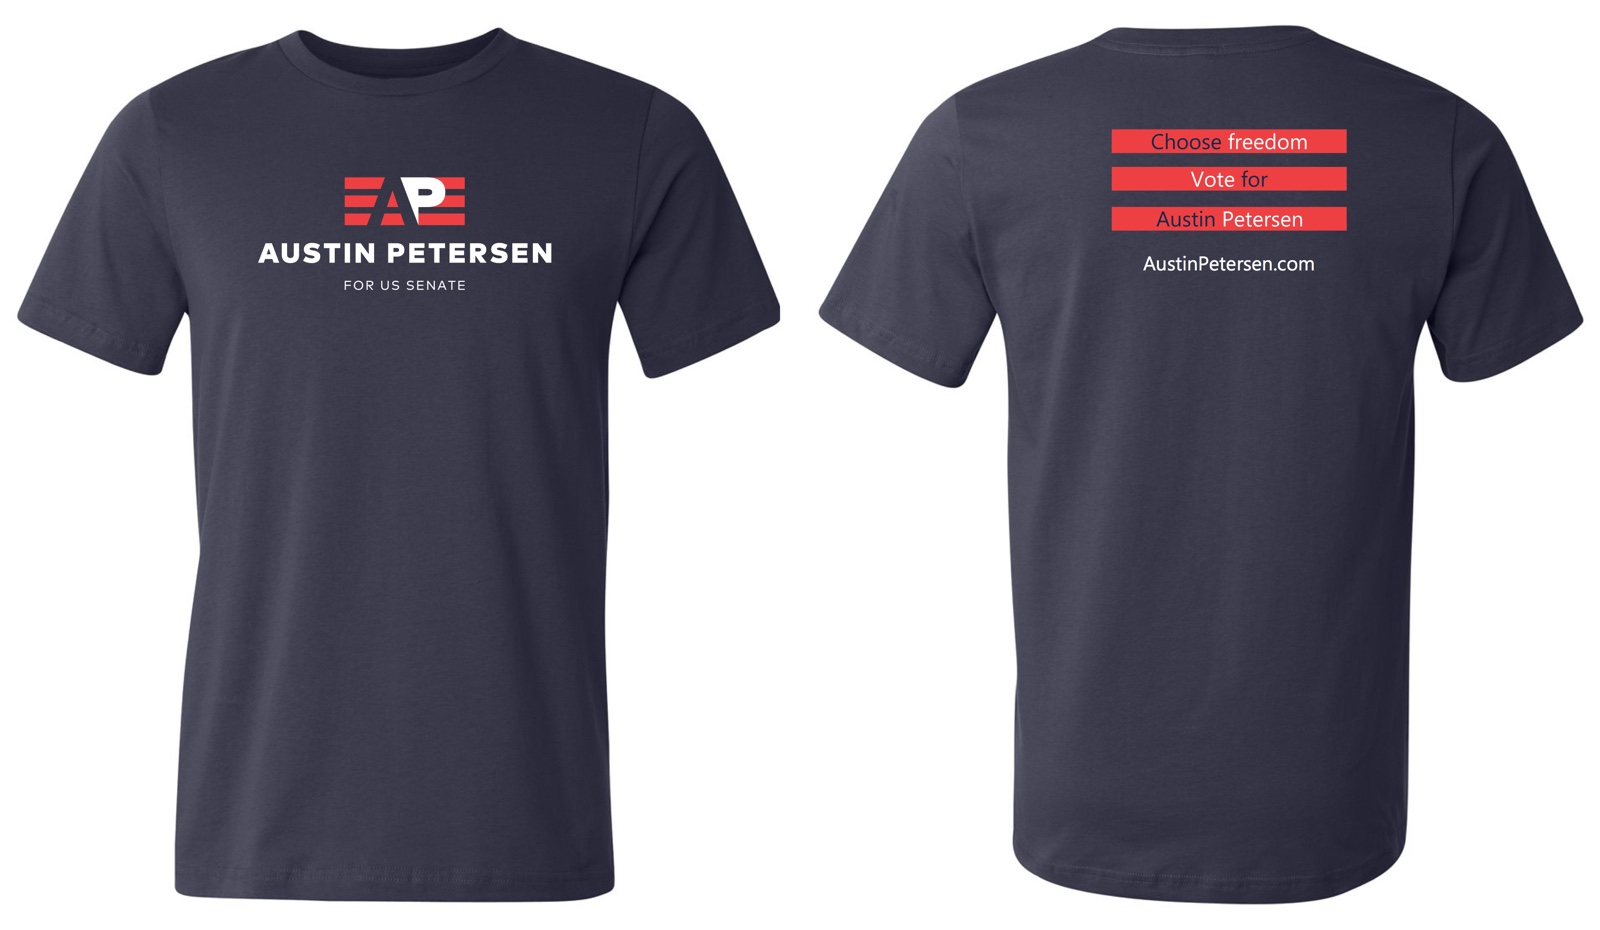 Official Campaign T-Shirt (Navy) - $30